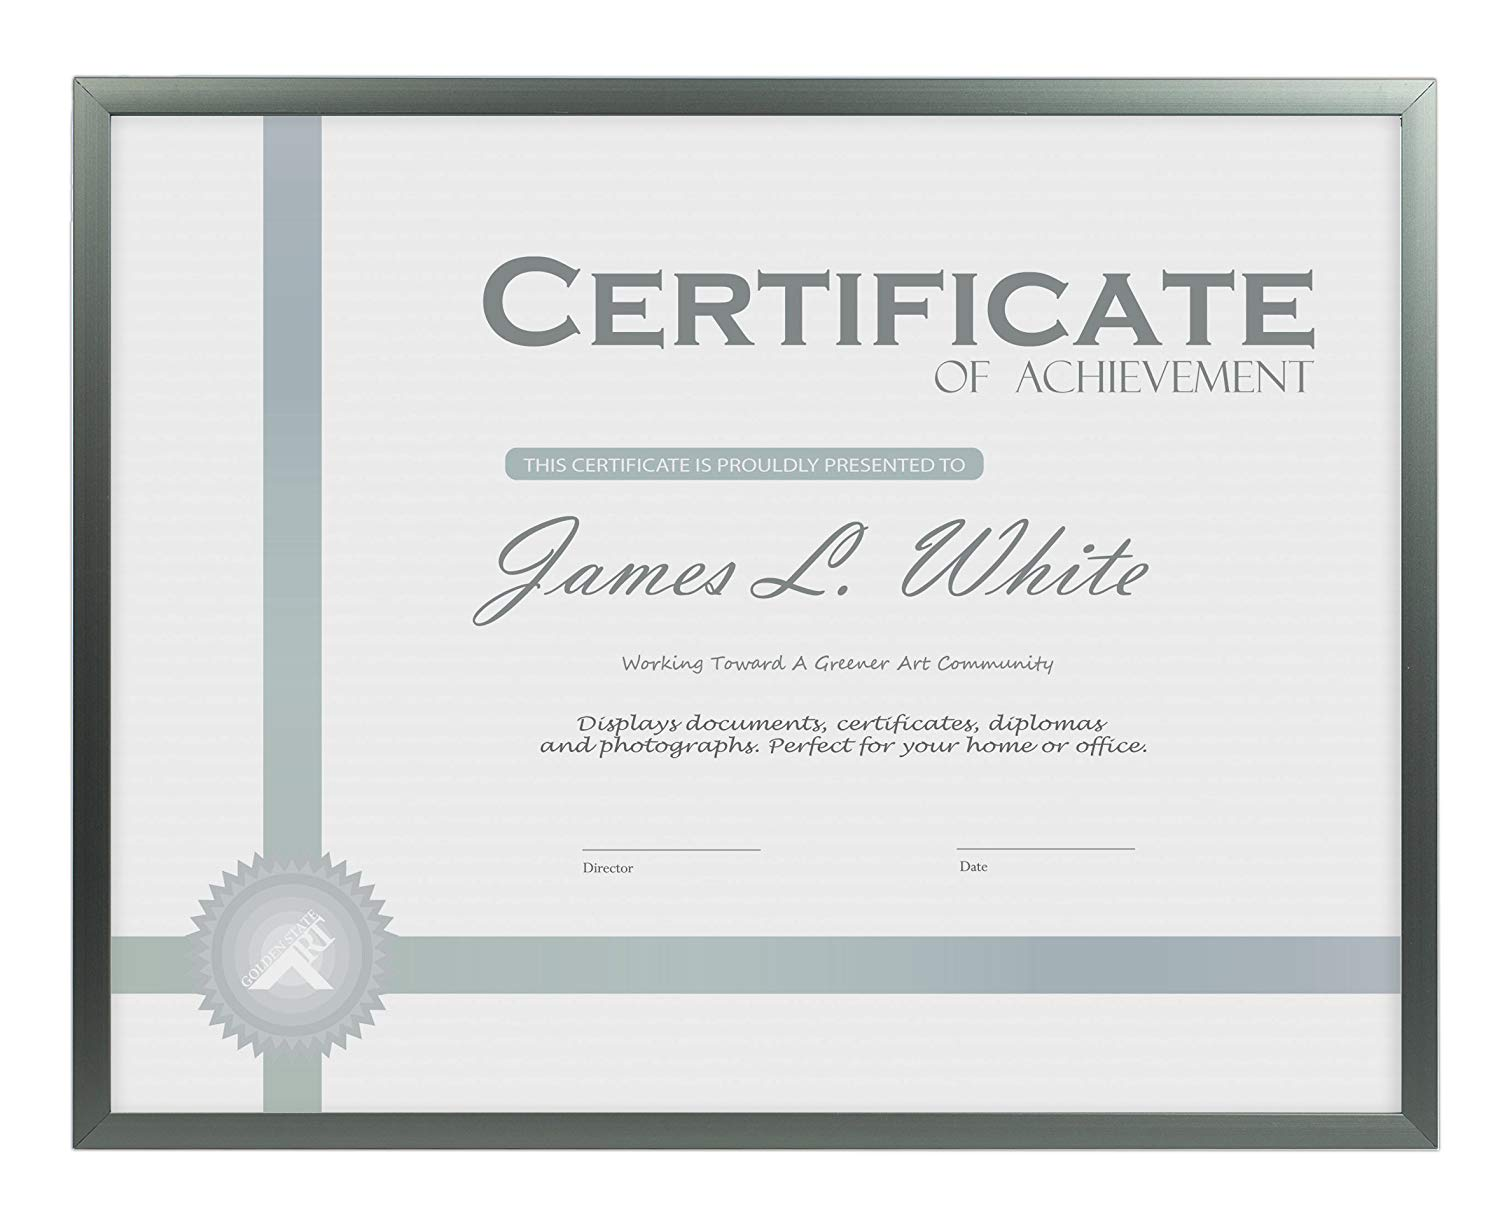 Golden State Art 8.5x11 Dark Grey Aluminum Frame for Certificate/Photo - Easel Stand for Tabletop - Landscape/Portrait - Wall Mounting - Real Glass